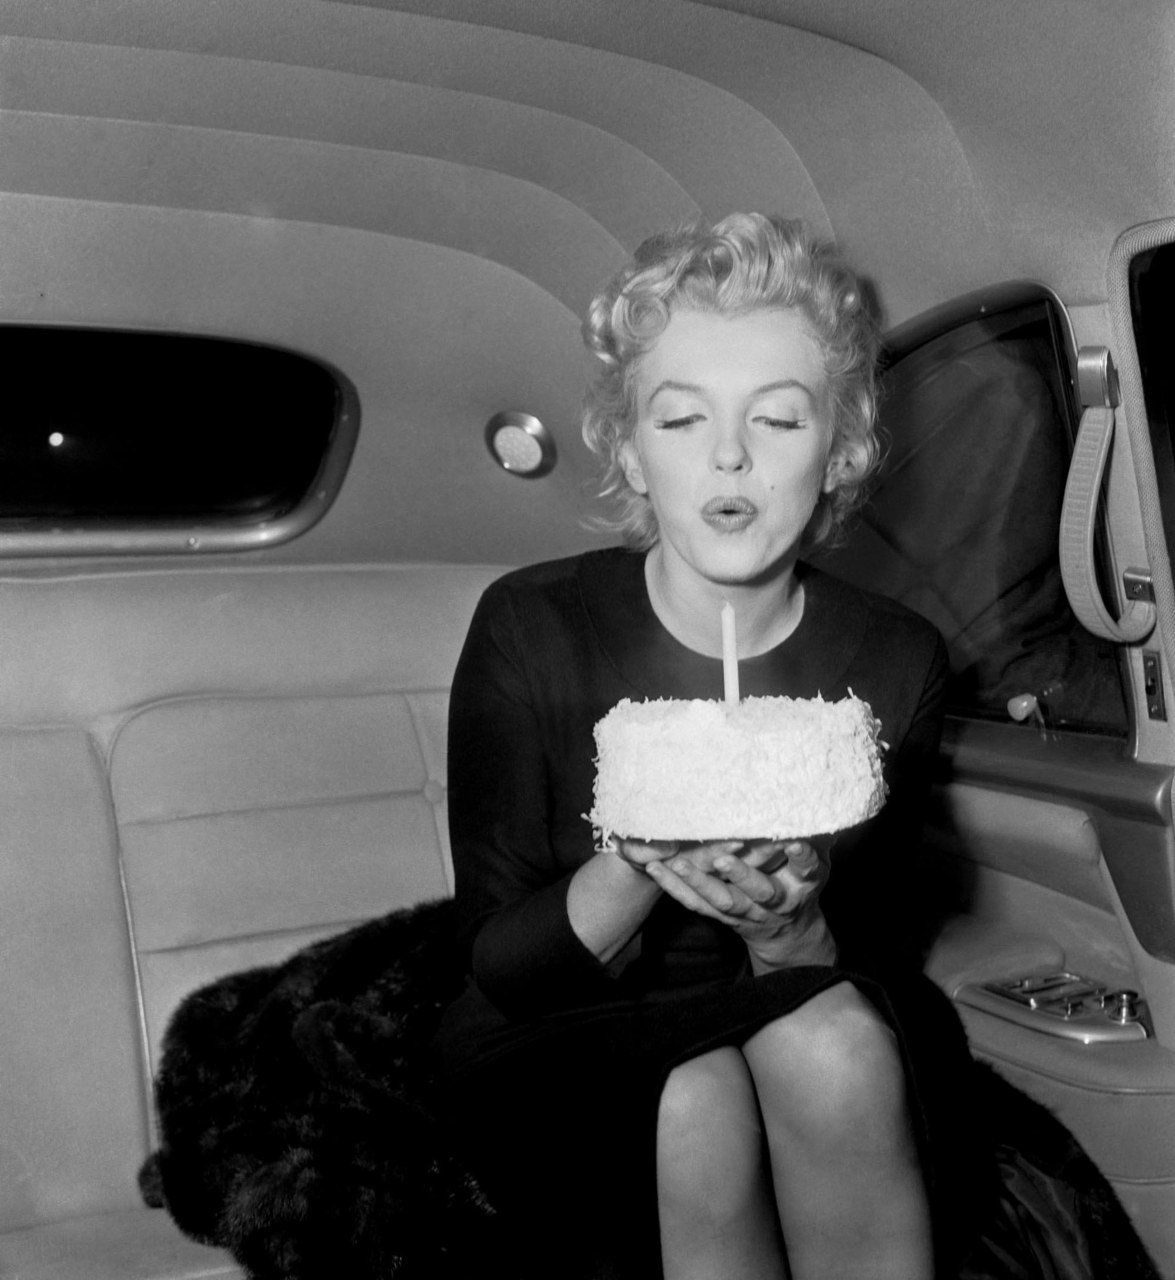 marilyn monroe birthday ... Cellphone Images May Show Cannibal Feeding On College Roommate (Graphic!